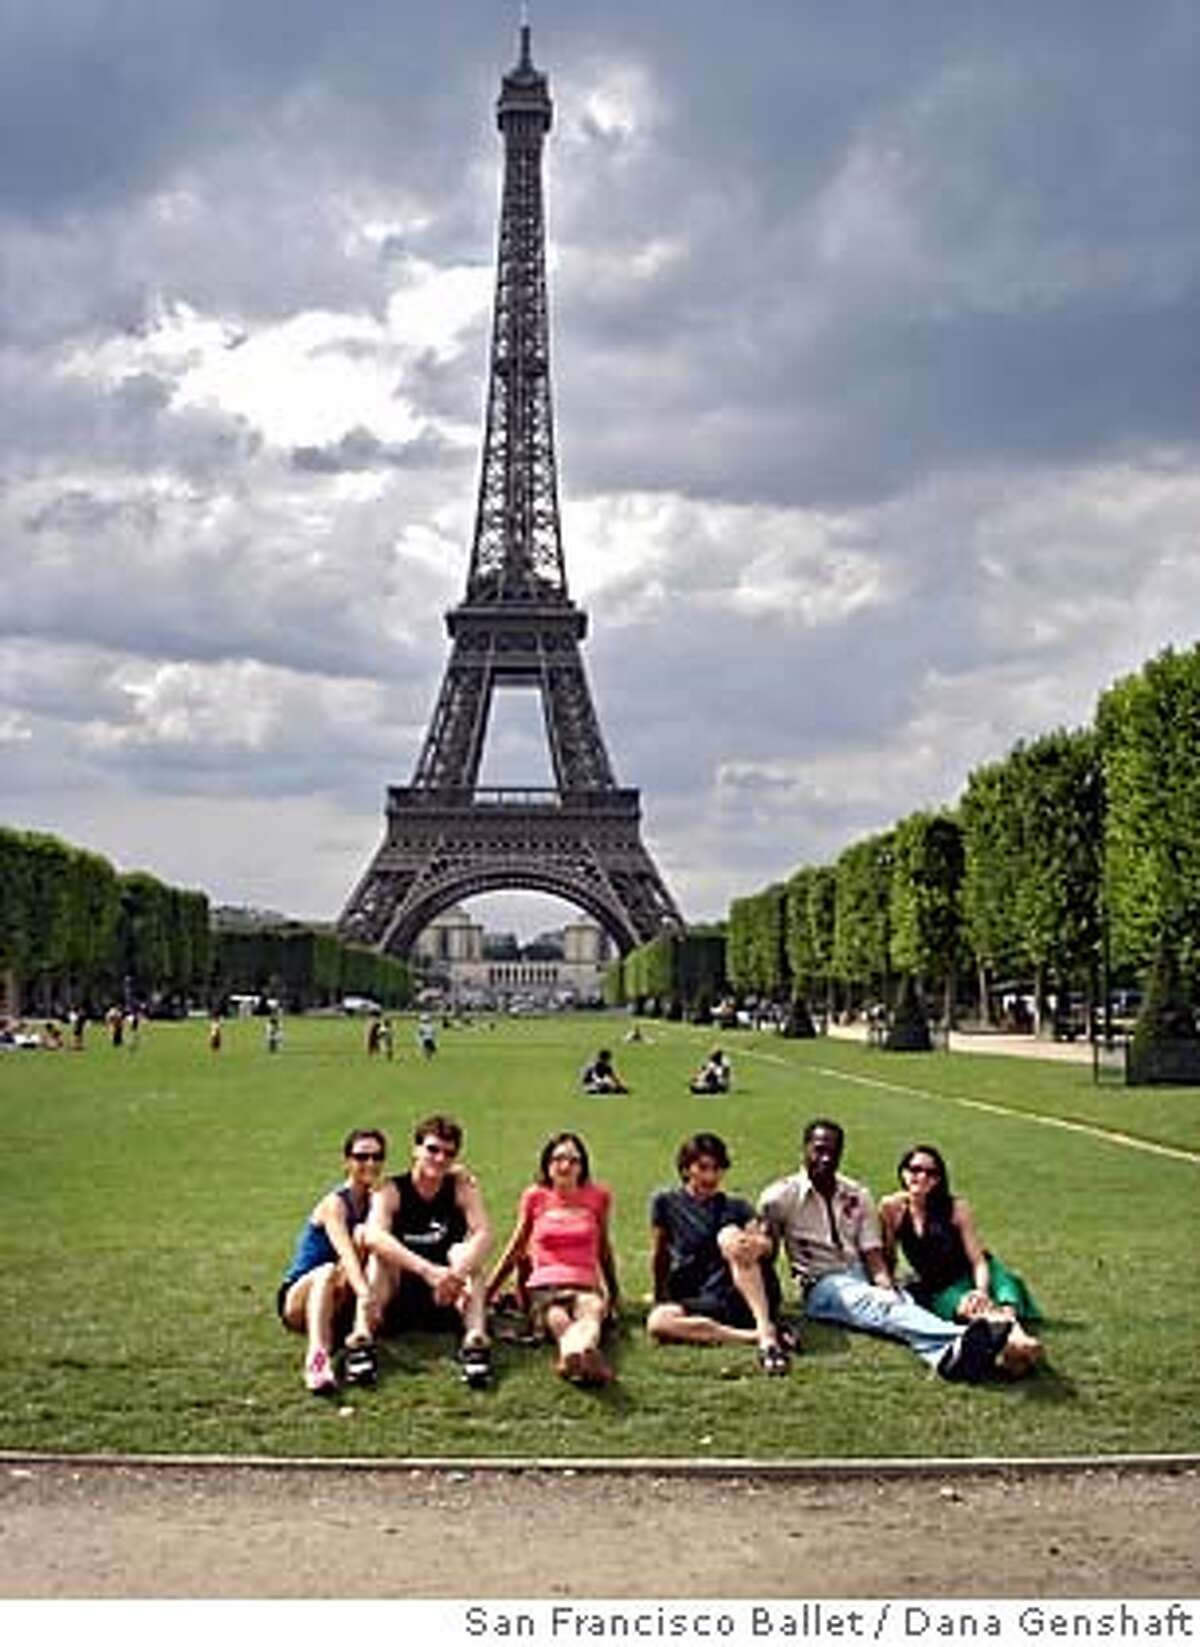 San Francisco Ballet dancers relaxing on the Champs de Mars during their three-week visit to Paris. Photo by Dana Genshaft/San Francisco Ballet